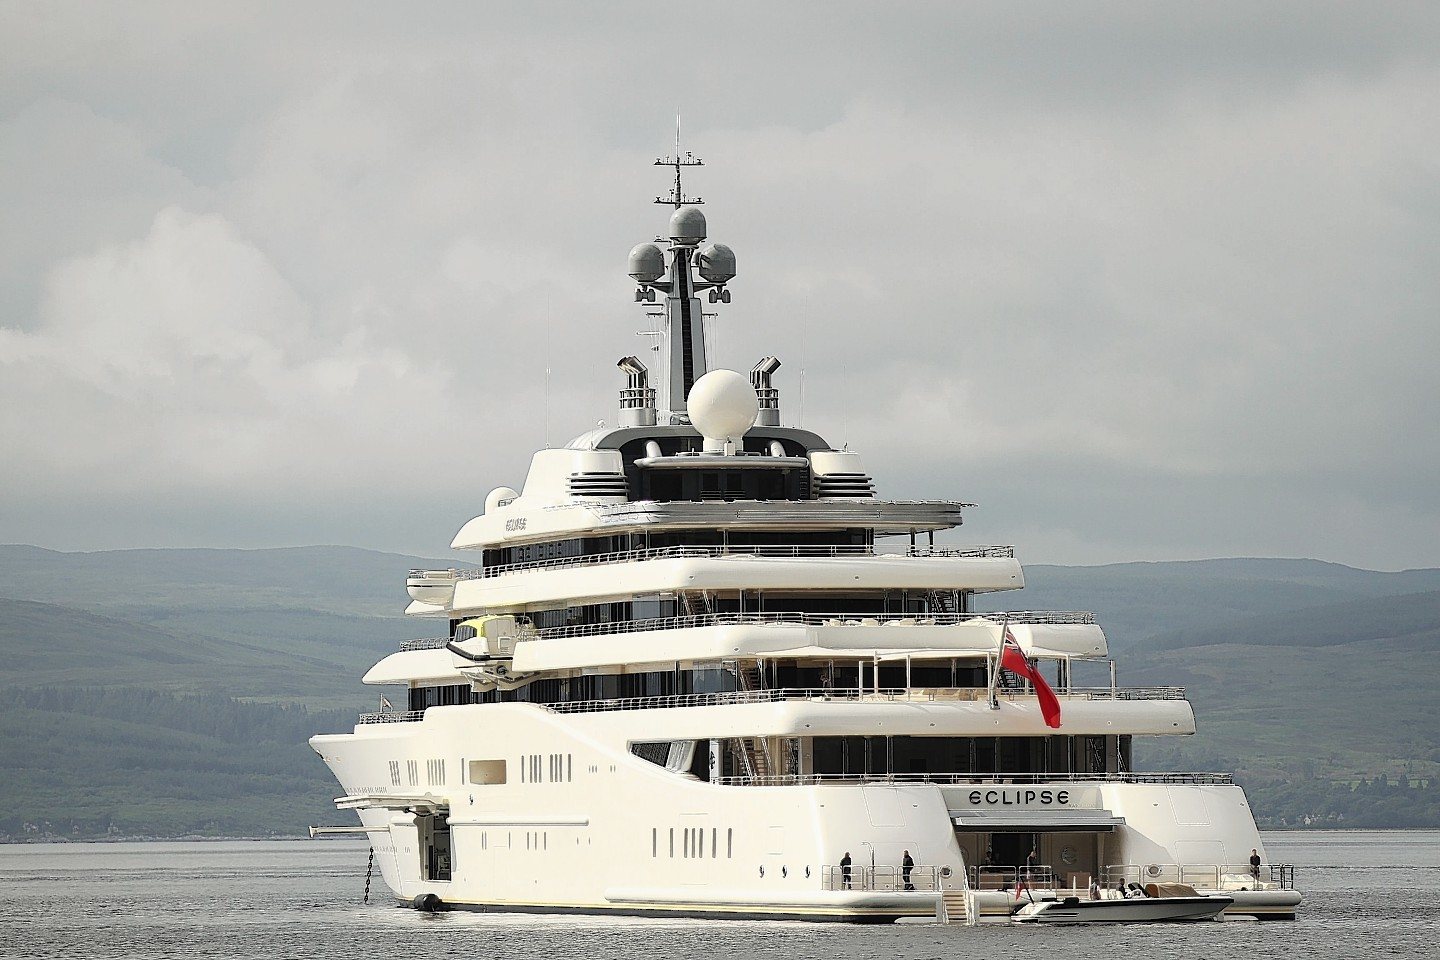 Abramovich's rather impressive Eclipse moored near Lochranza, Arran before his visit to Islay